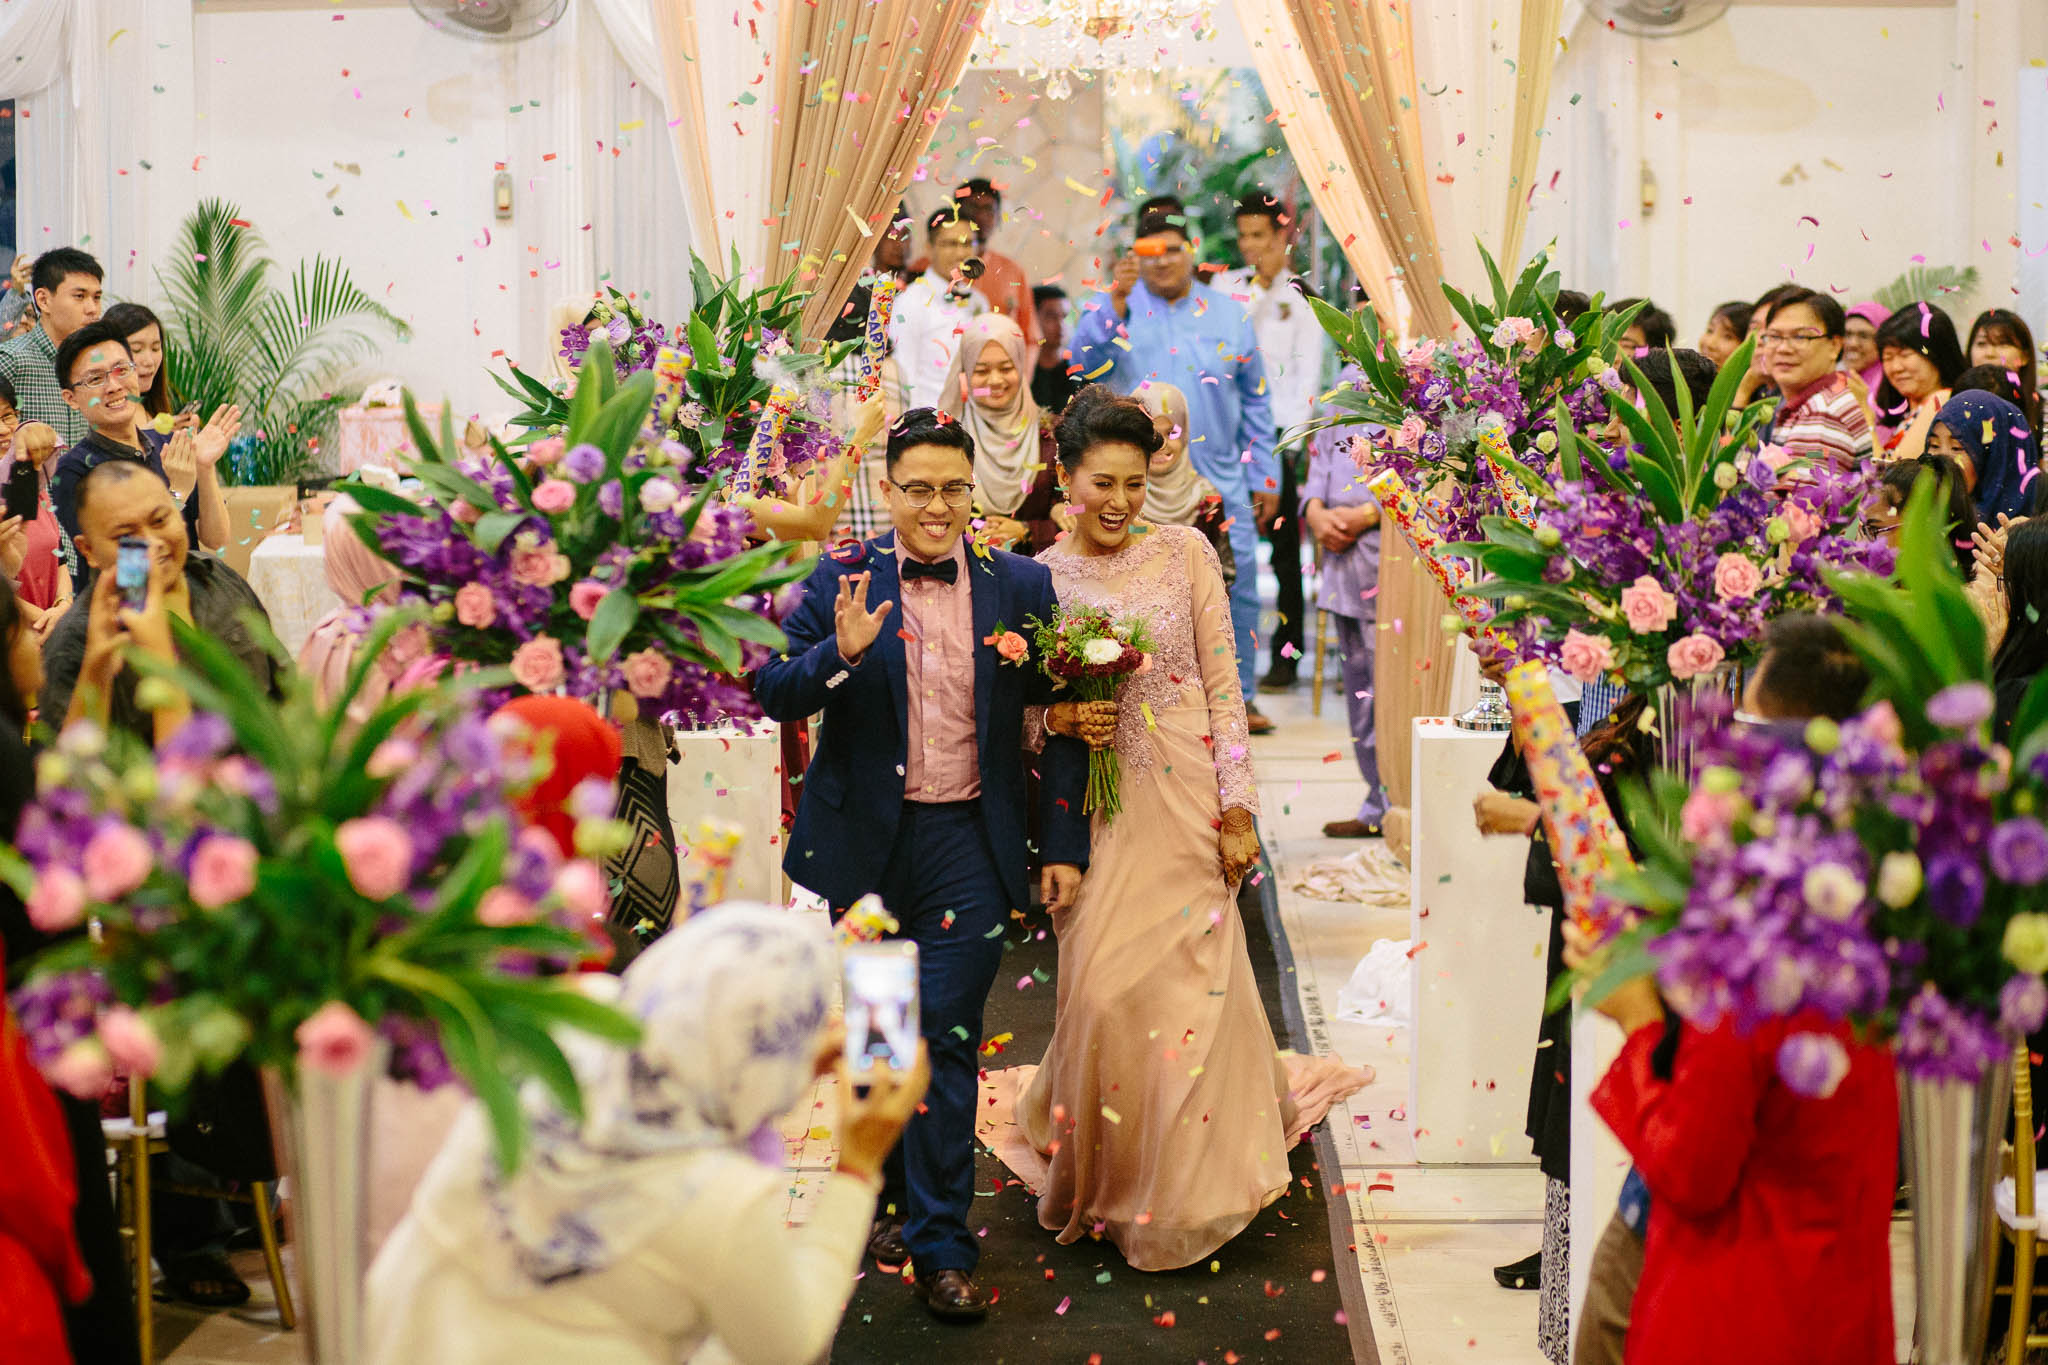 singapore-wedding-photographer-we-made-these-2016-selects-020.jpg